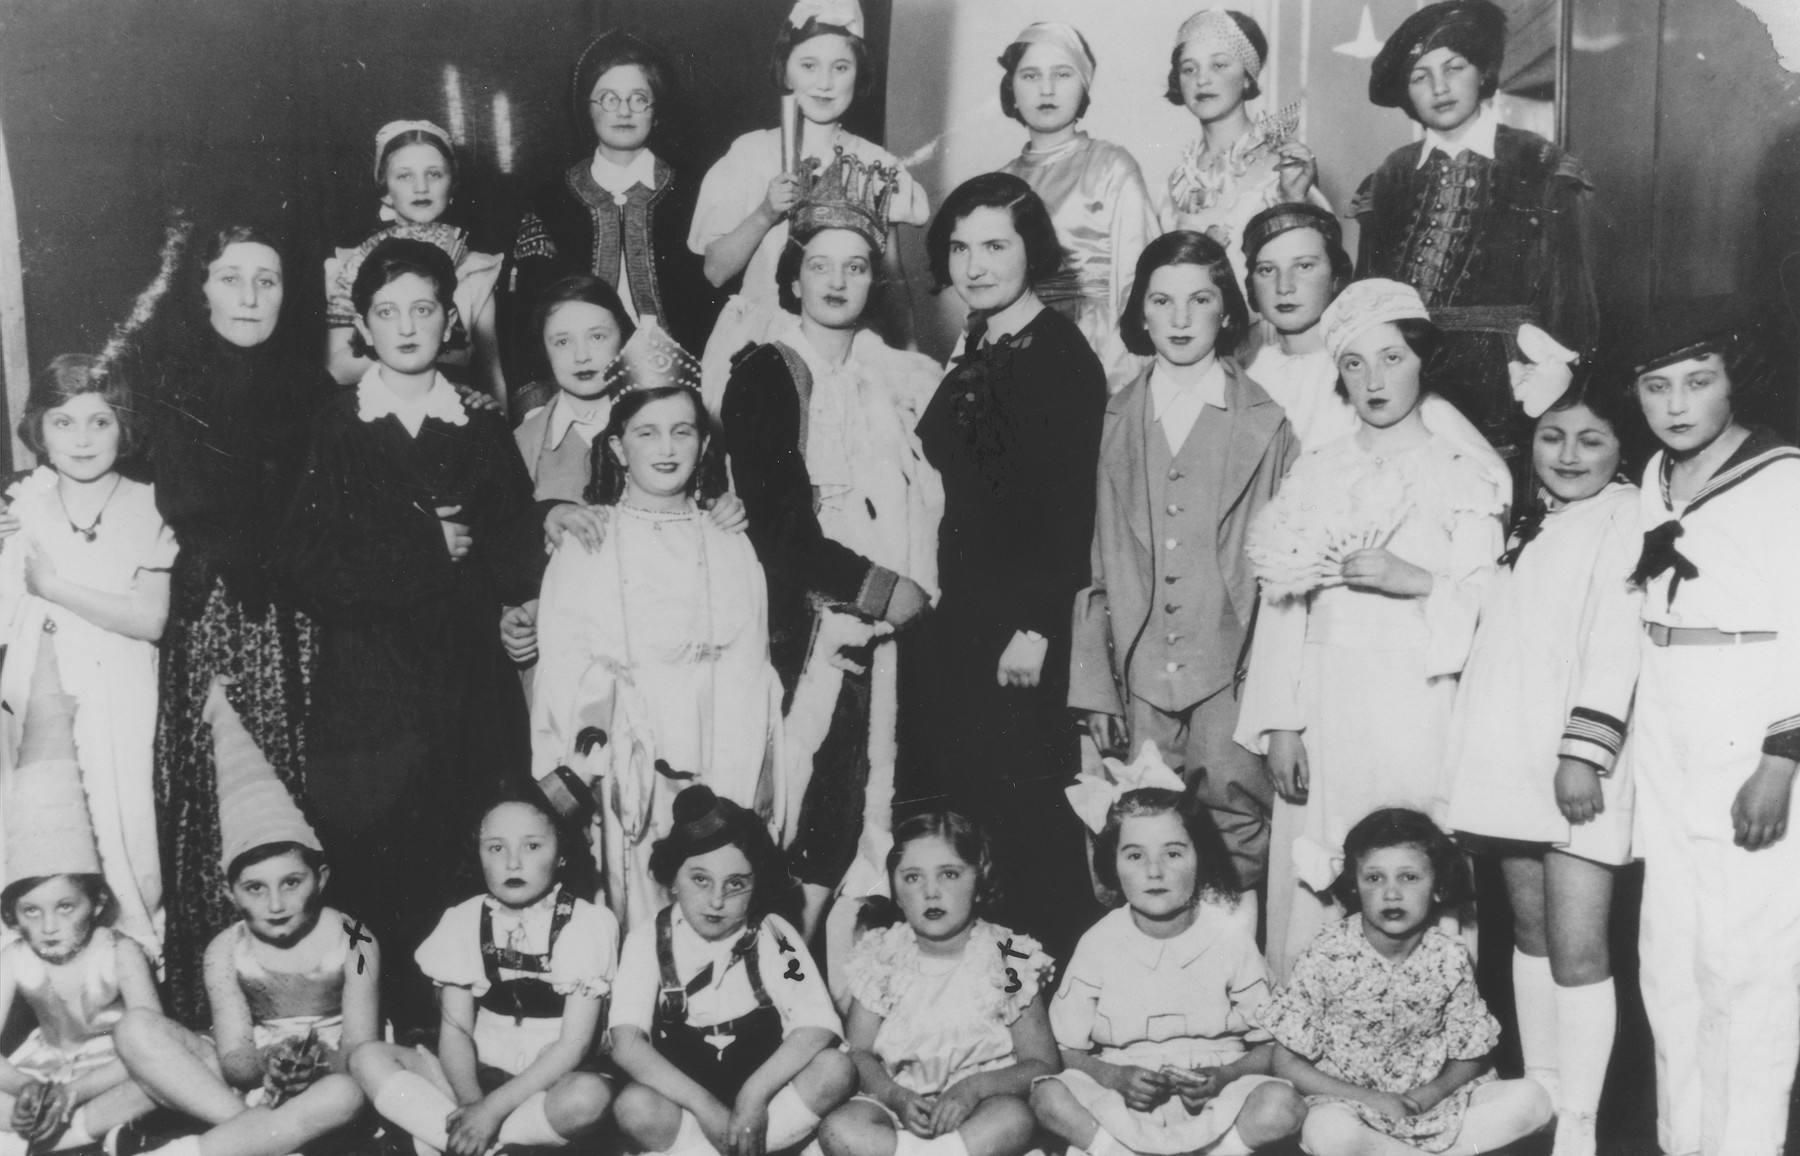 Group portrait of students at the Mukachevo Beit Yaakov school in their Purim costumes.  Those pictured include Erika Kestenbaum (front row, second from the left), Magda Meisels (front row, fourth from the left), Magda Kestenbaum (front row, third from the right), Suri Kasztner (second row, second from the right), Ibi Weiss (second row, far left), Eva Keleti, Judith Kestenbaum (second row, behind Magda Meisels) and Maca Stern (top row, left).